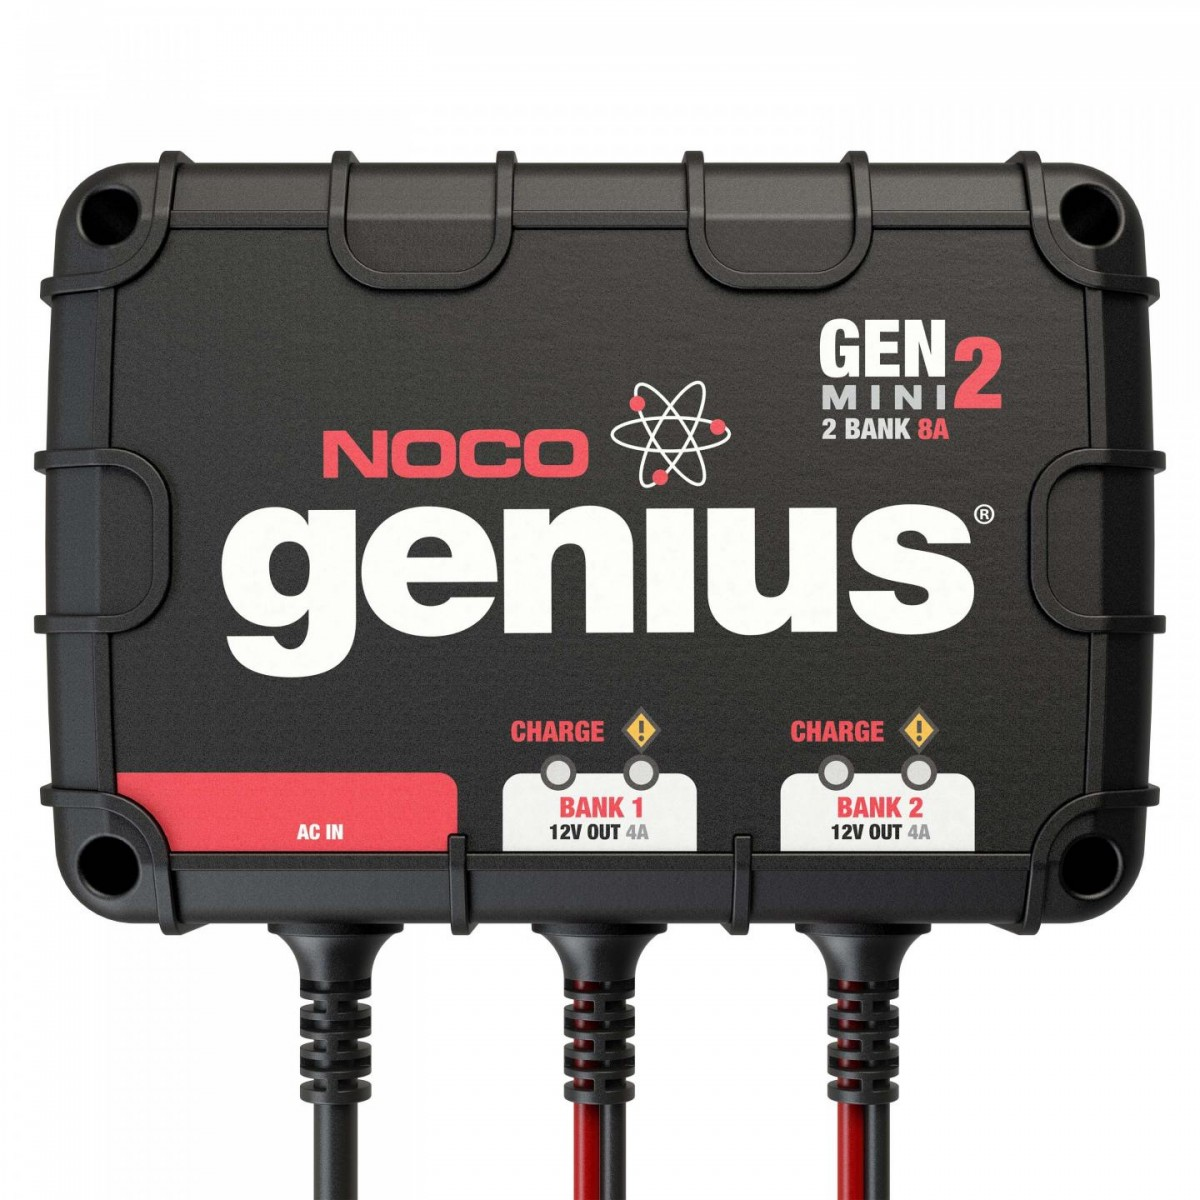 Noco 2 Bank 8a On Board Battery Charger Genm2 3 Prong Trolling Motor Plug Wiring Diagram